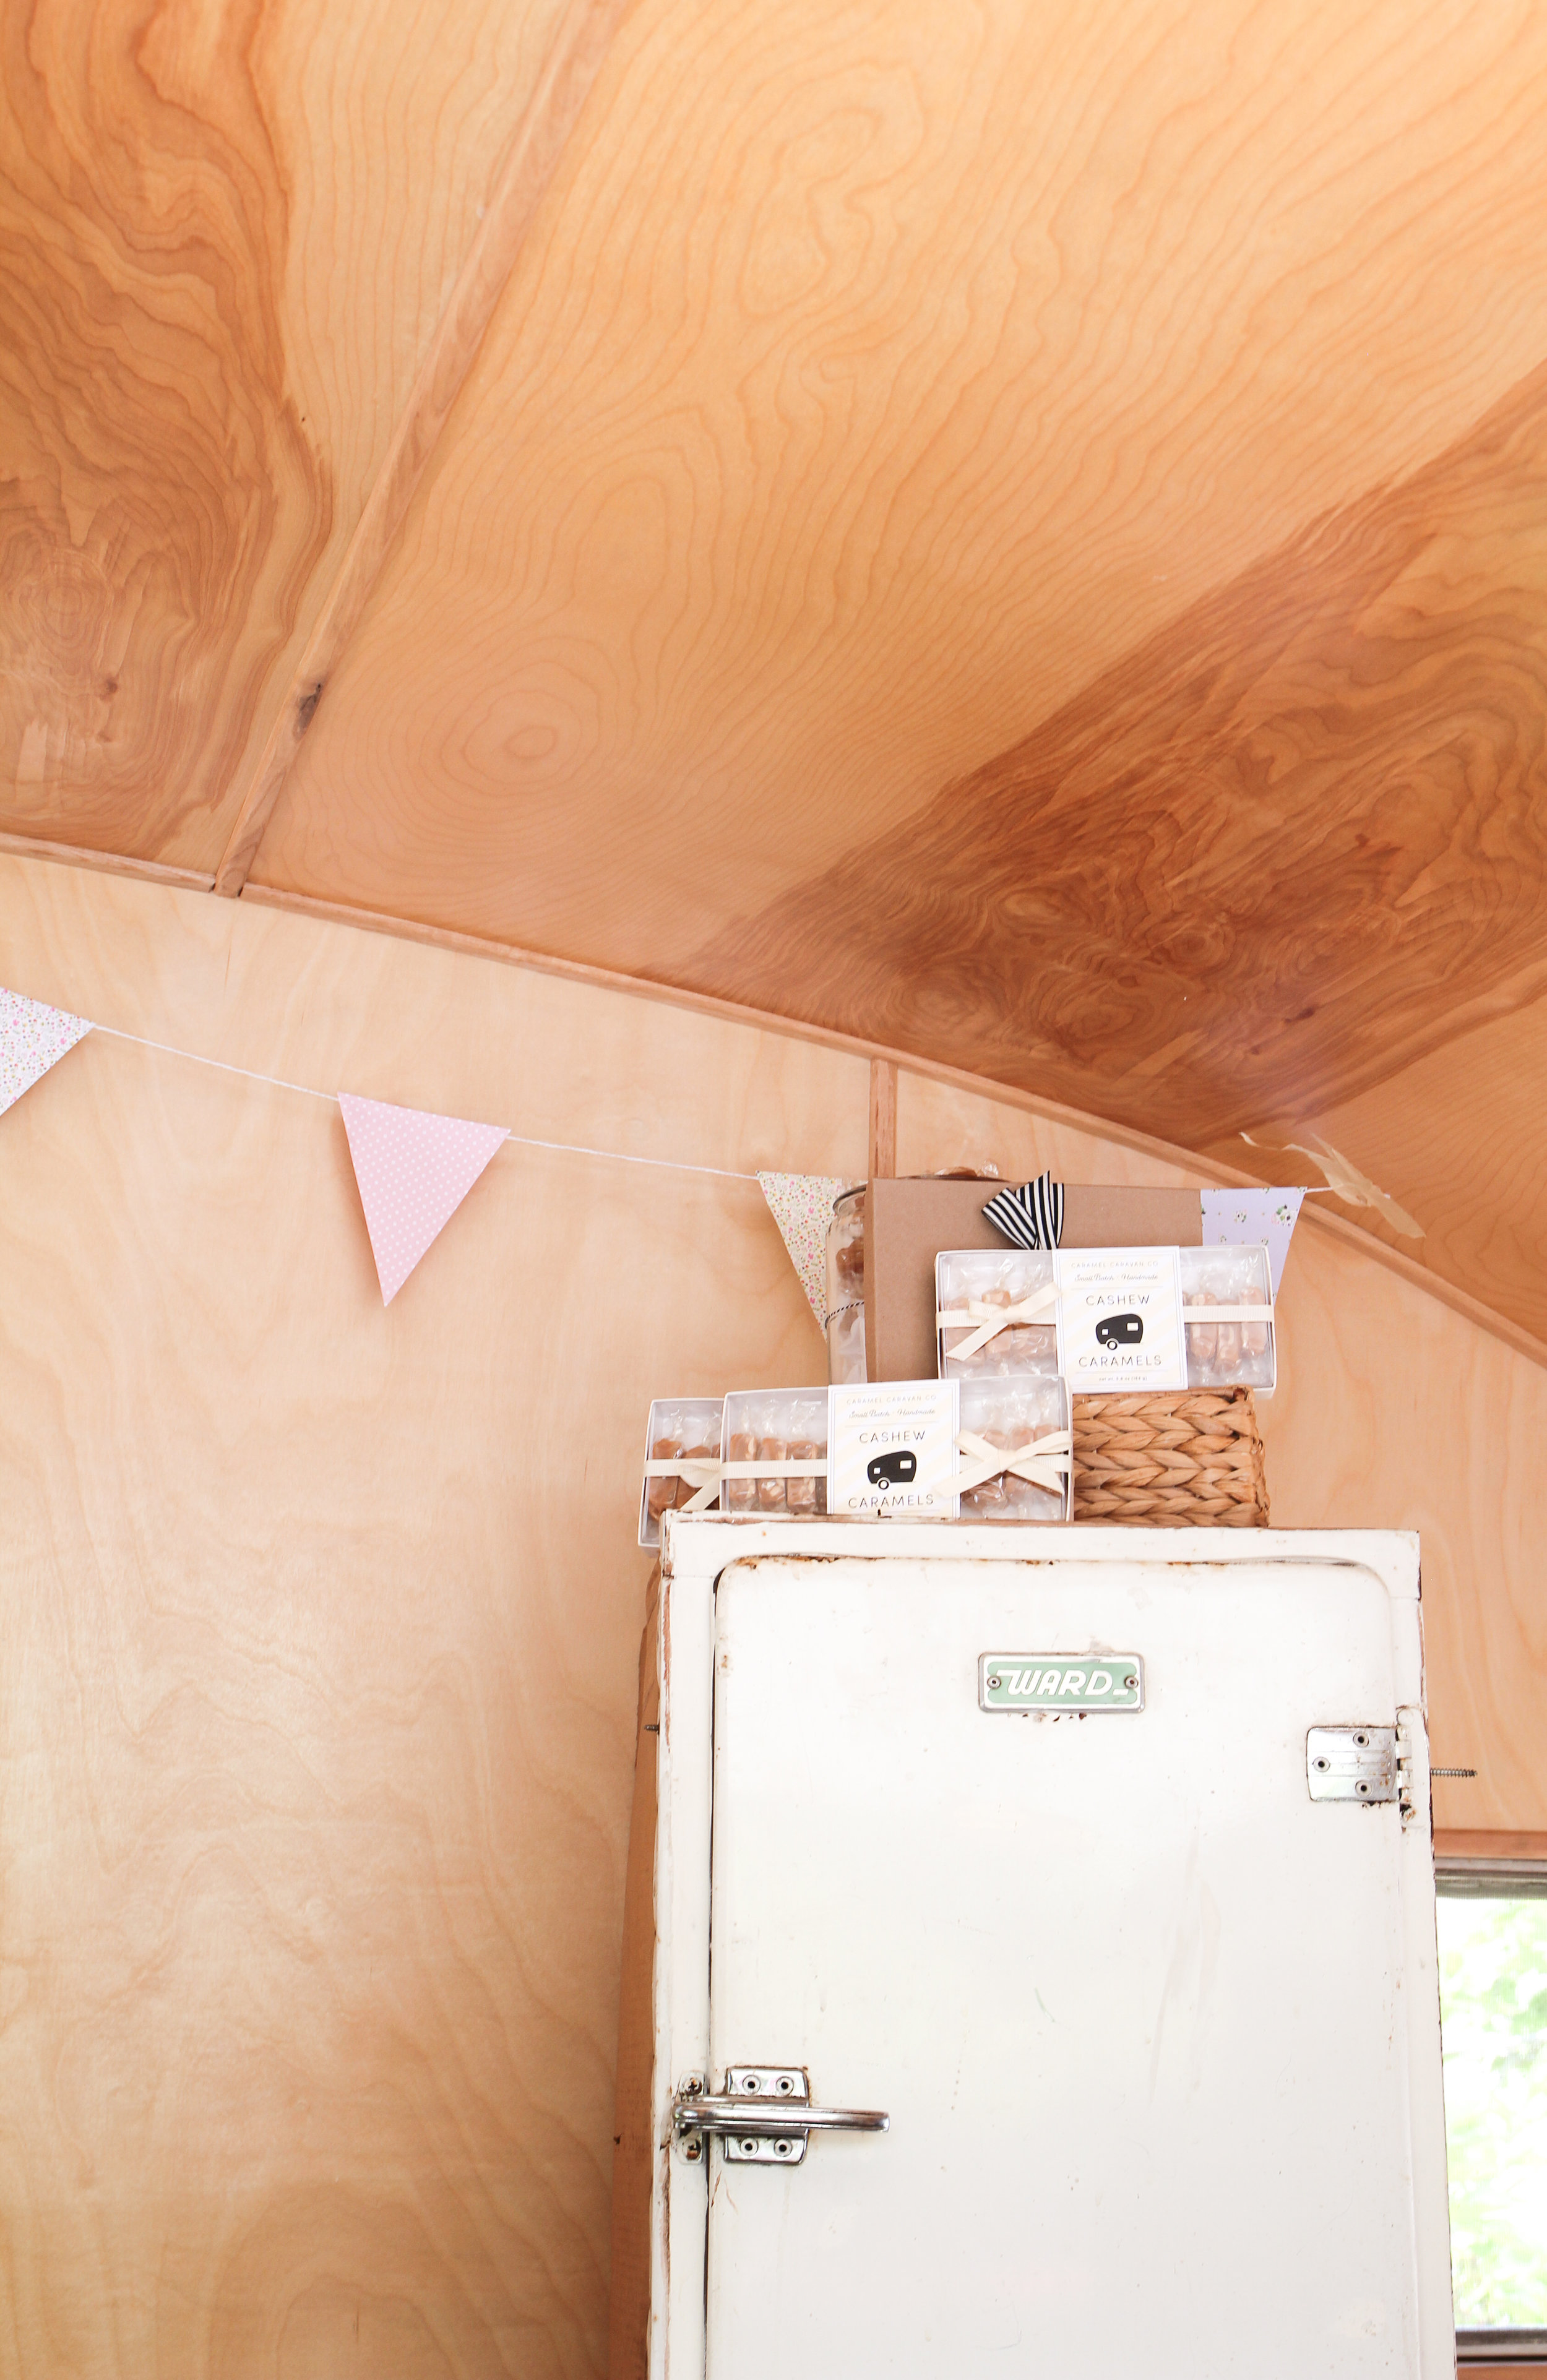 icebox in vintage trailer